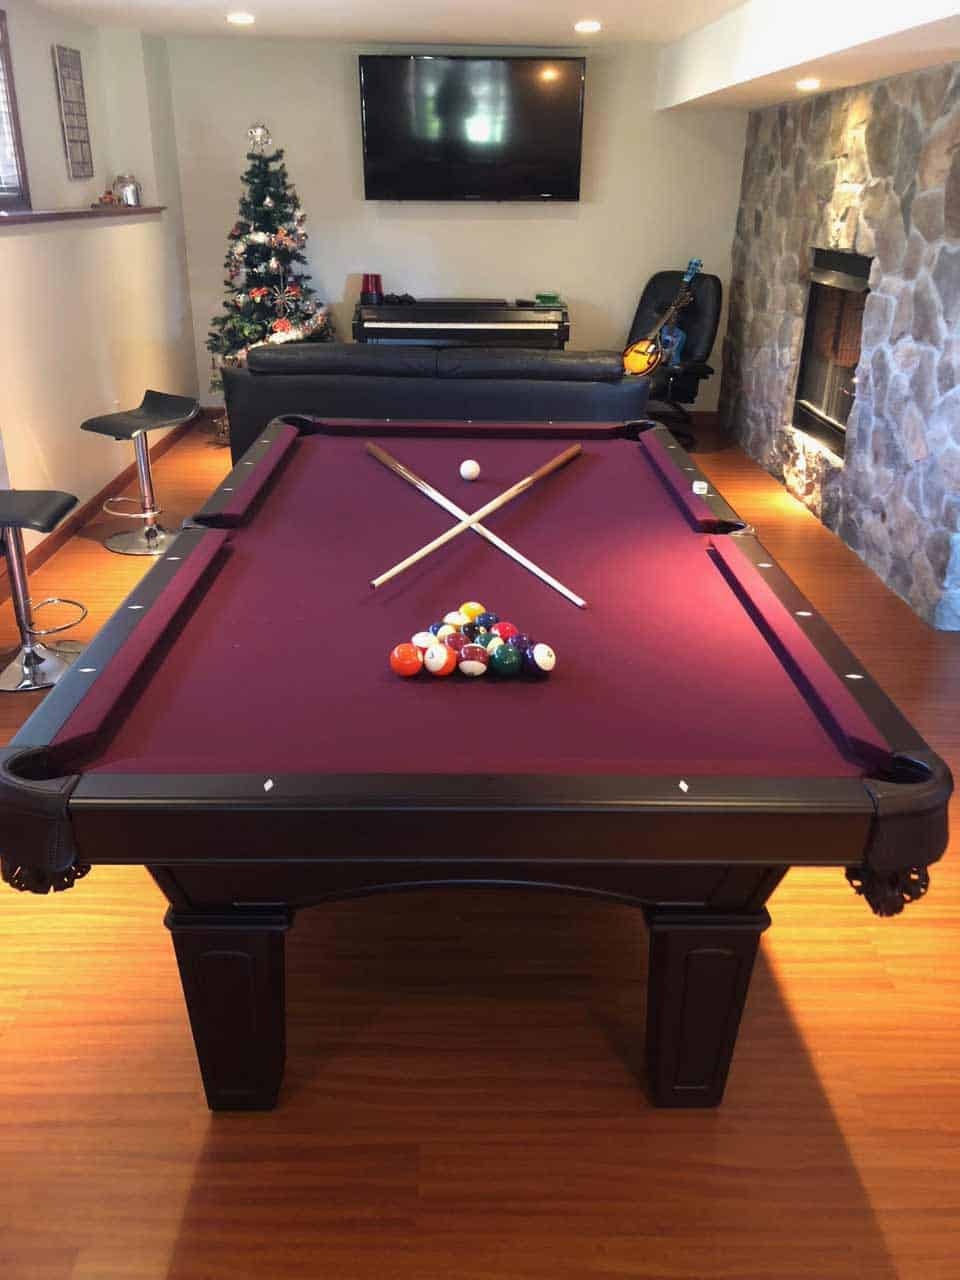 north haven ct red pool table on christmas